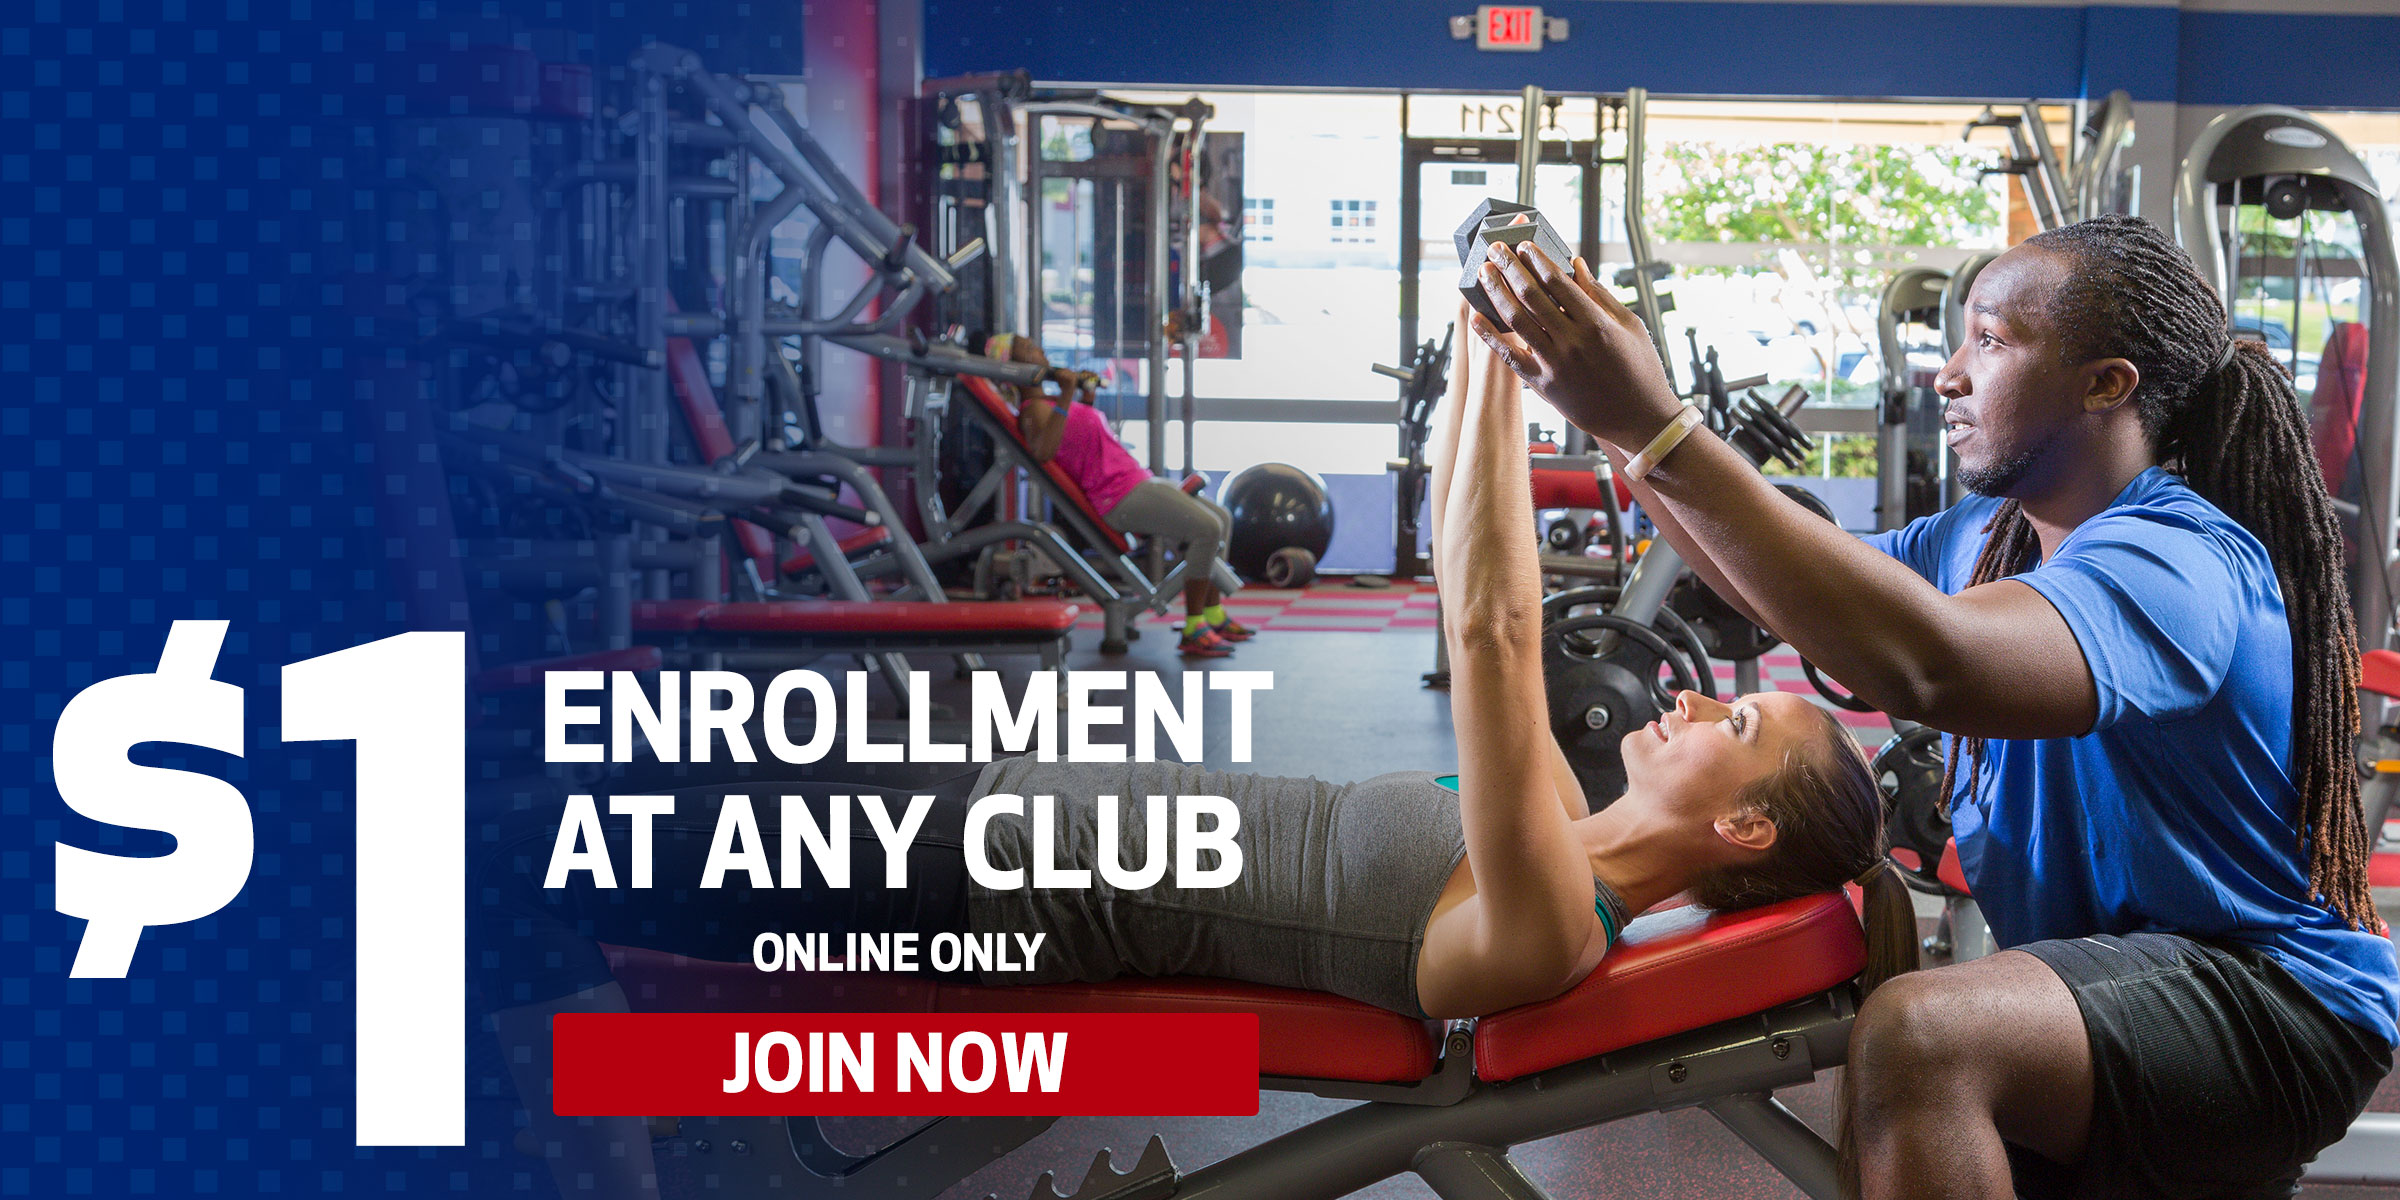 $1 Enrollment at Any Club. Online Only.